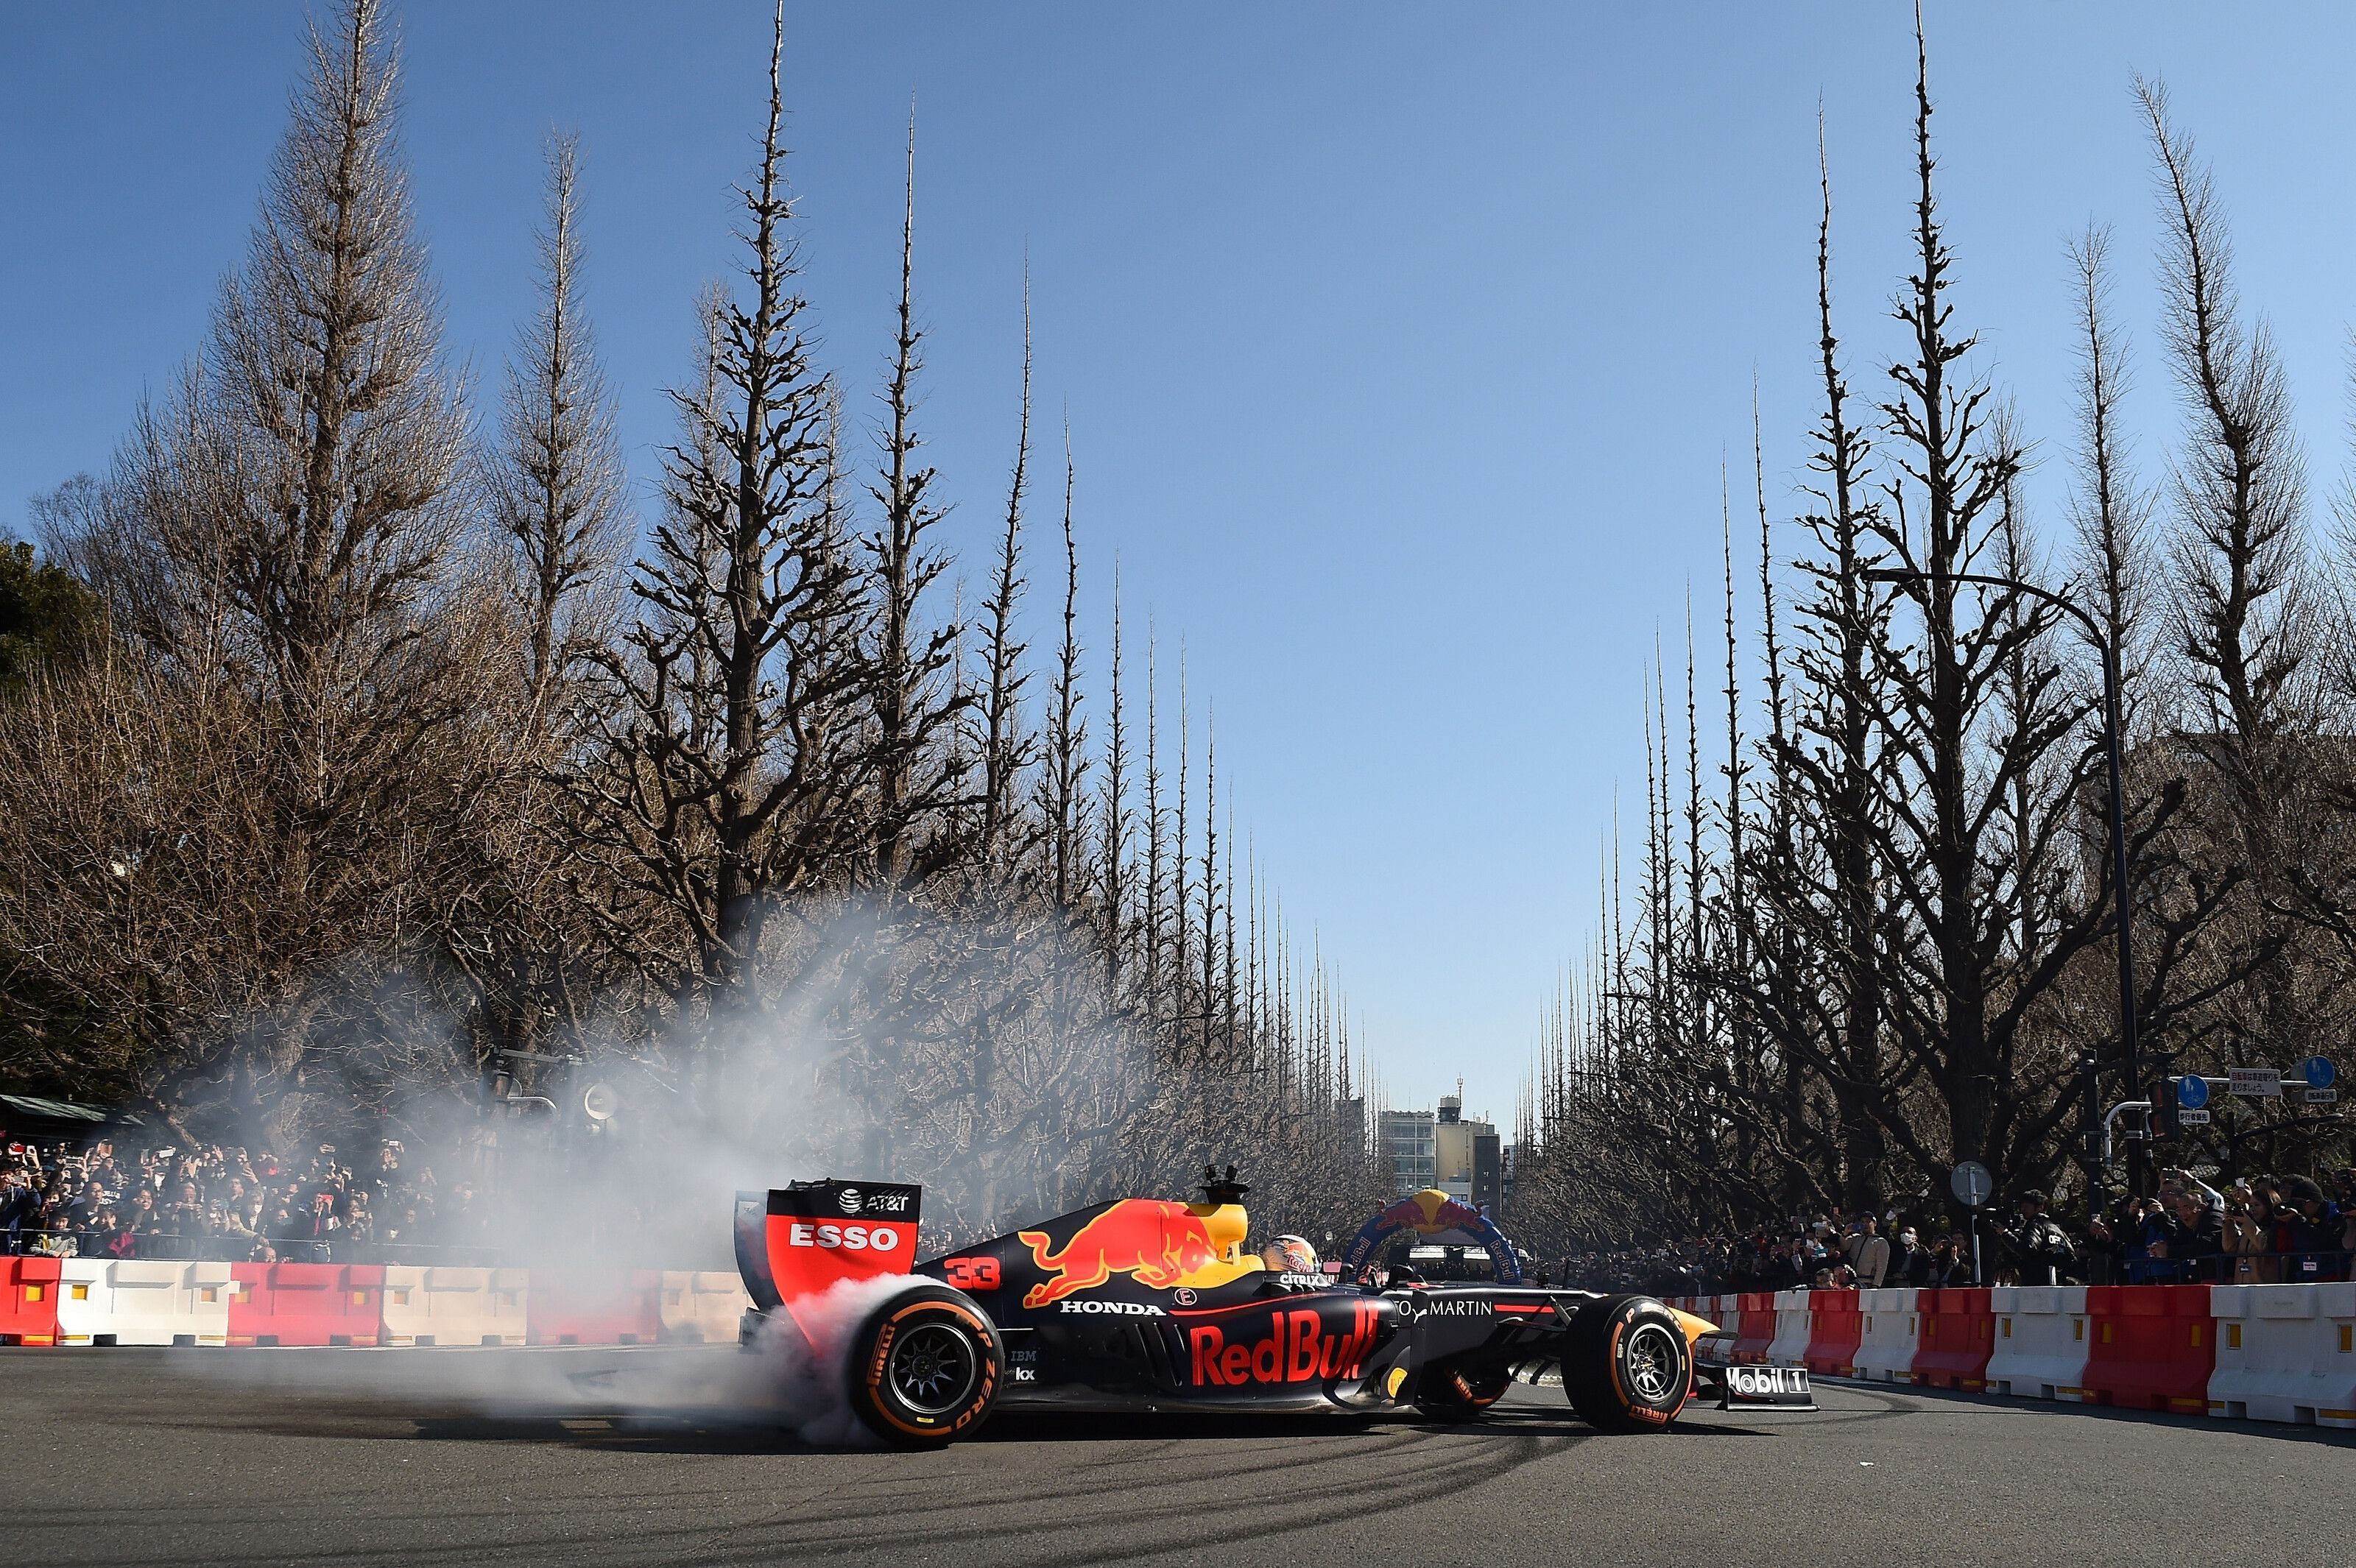 Max Verstappen, Pierre Gasly, Red Bull F1 showrun